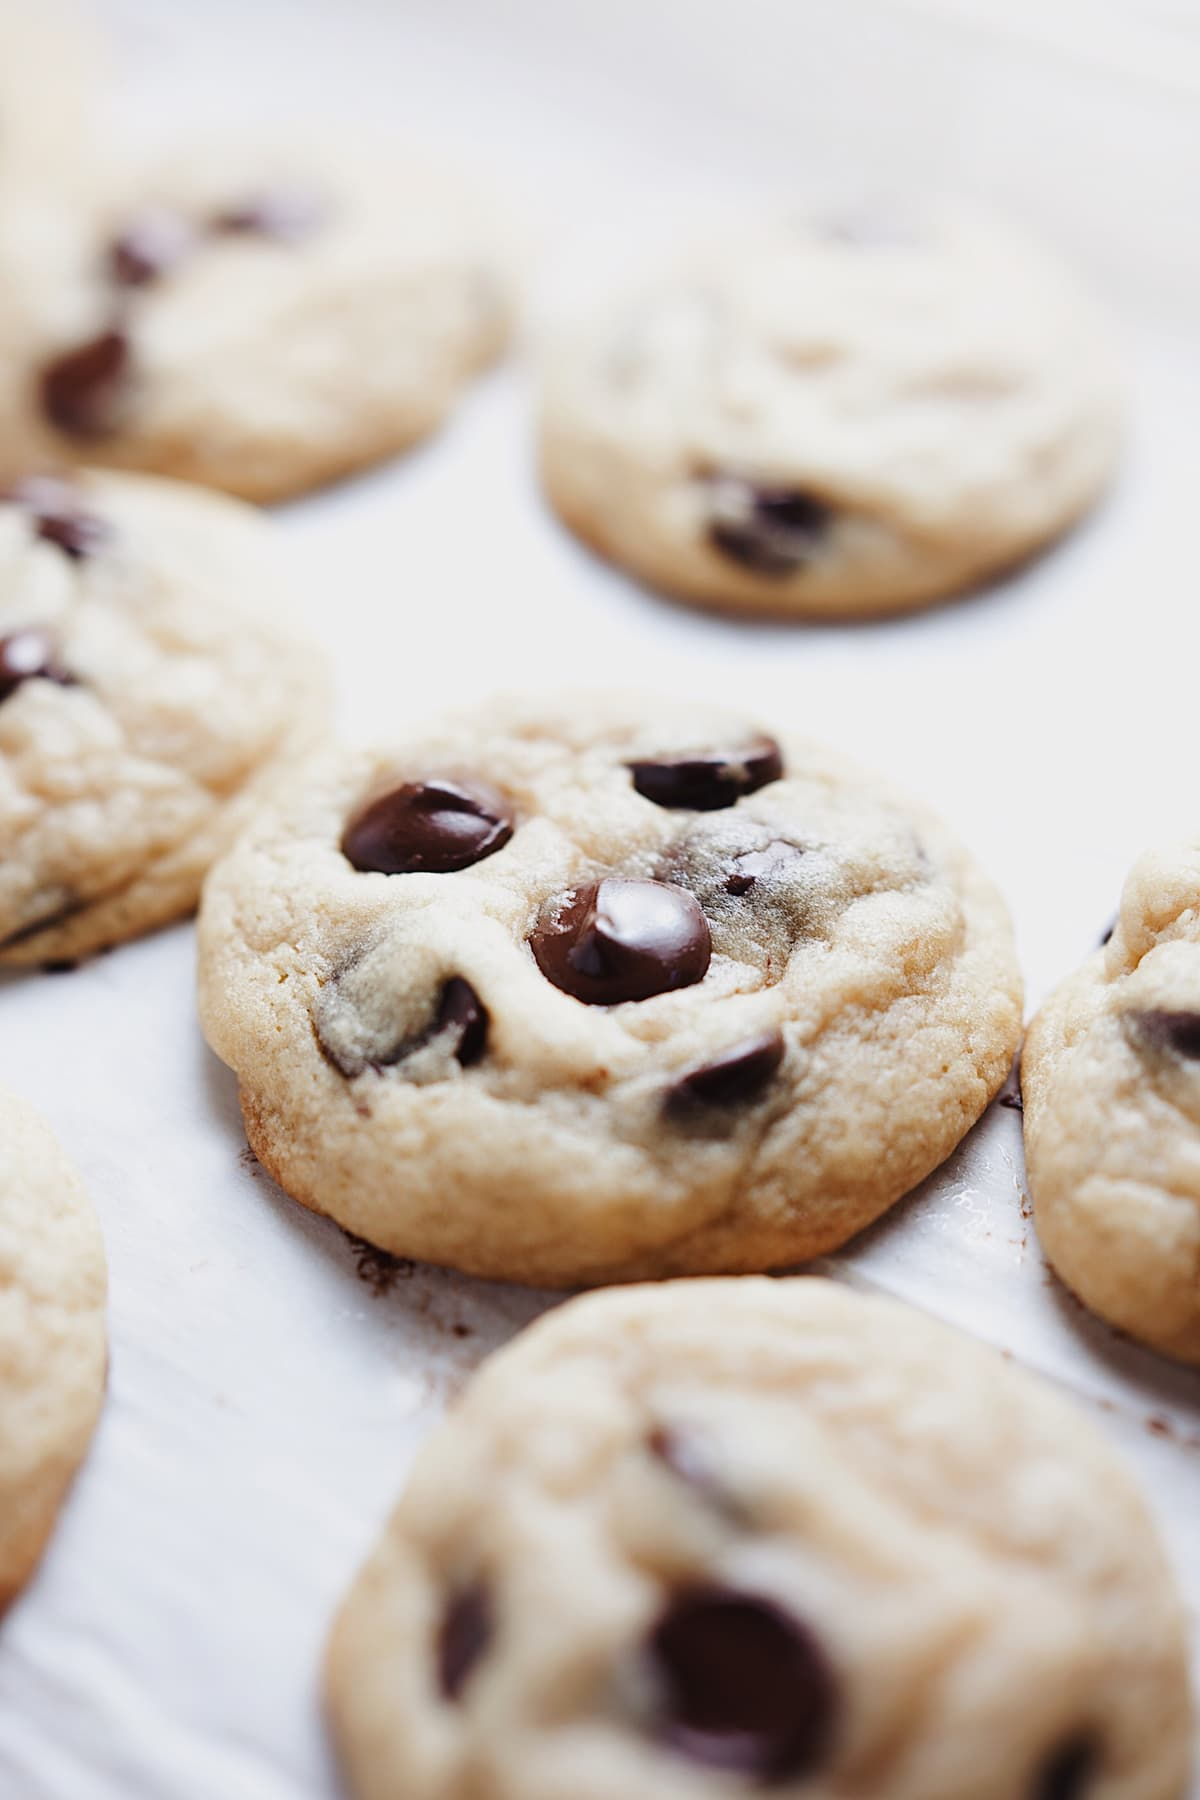 Chewy chocolate chip cookie recipe laid out on parchment paper.